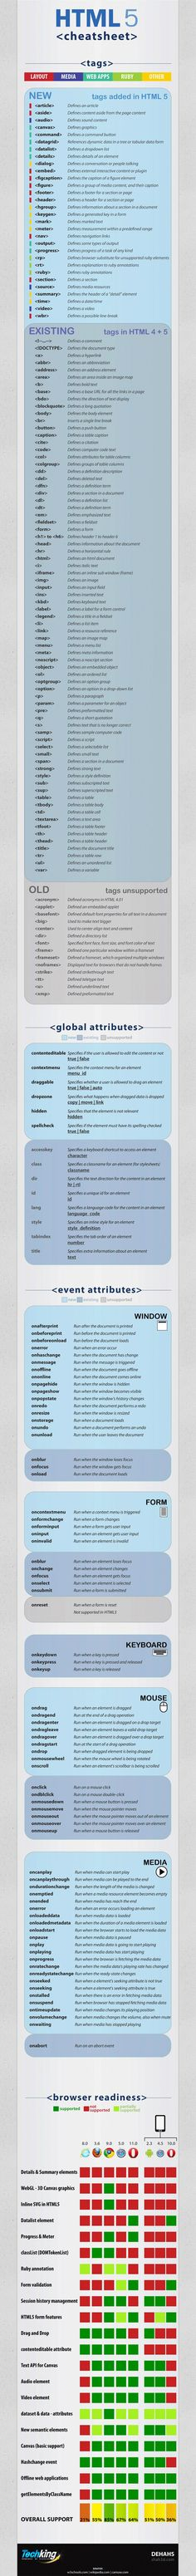 Hypertext Markup Language 5 Cheat sheet | Downgraf - Design Weblog For Designers